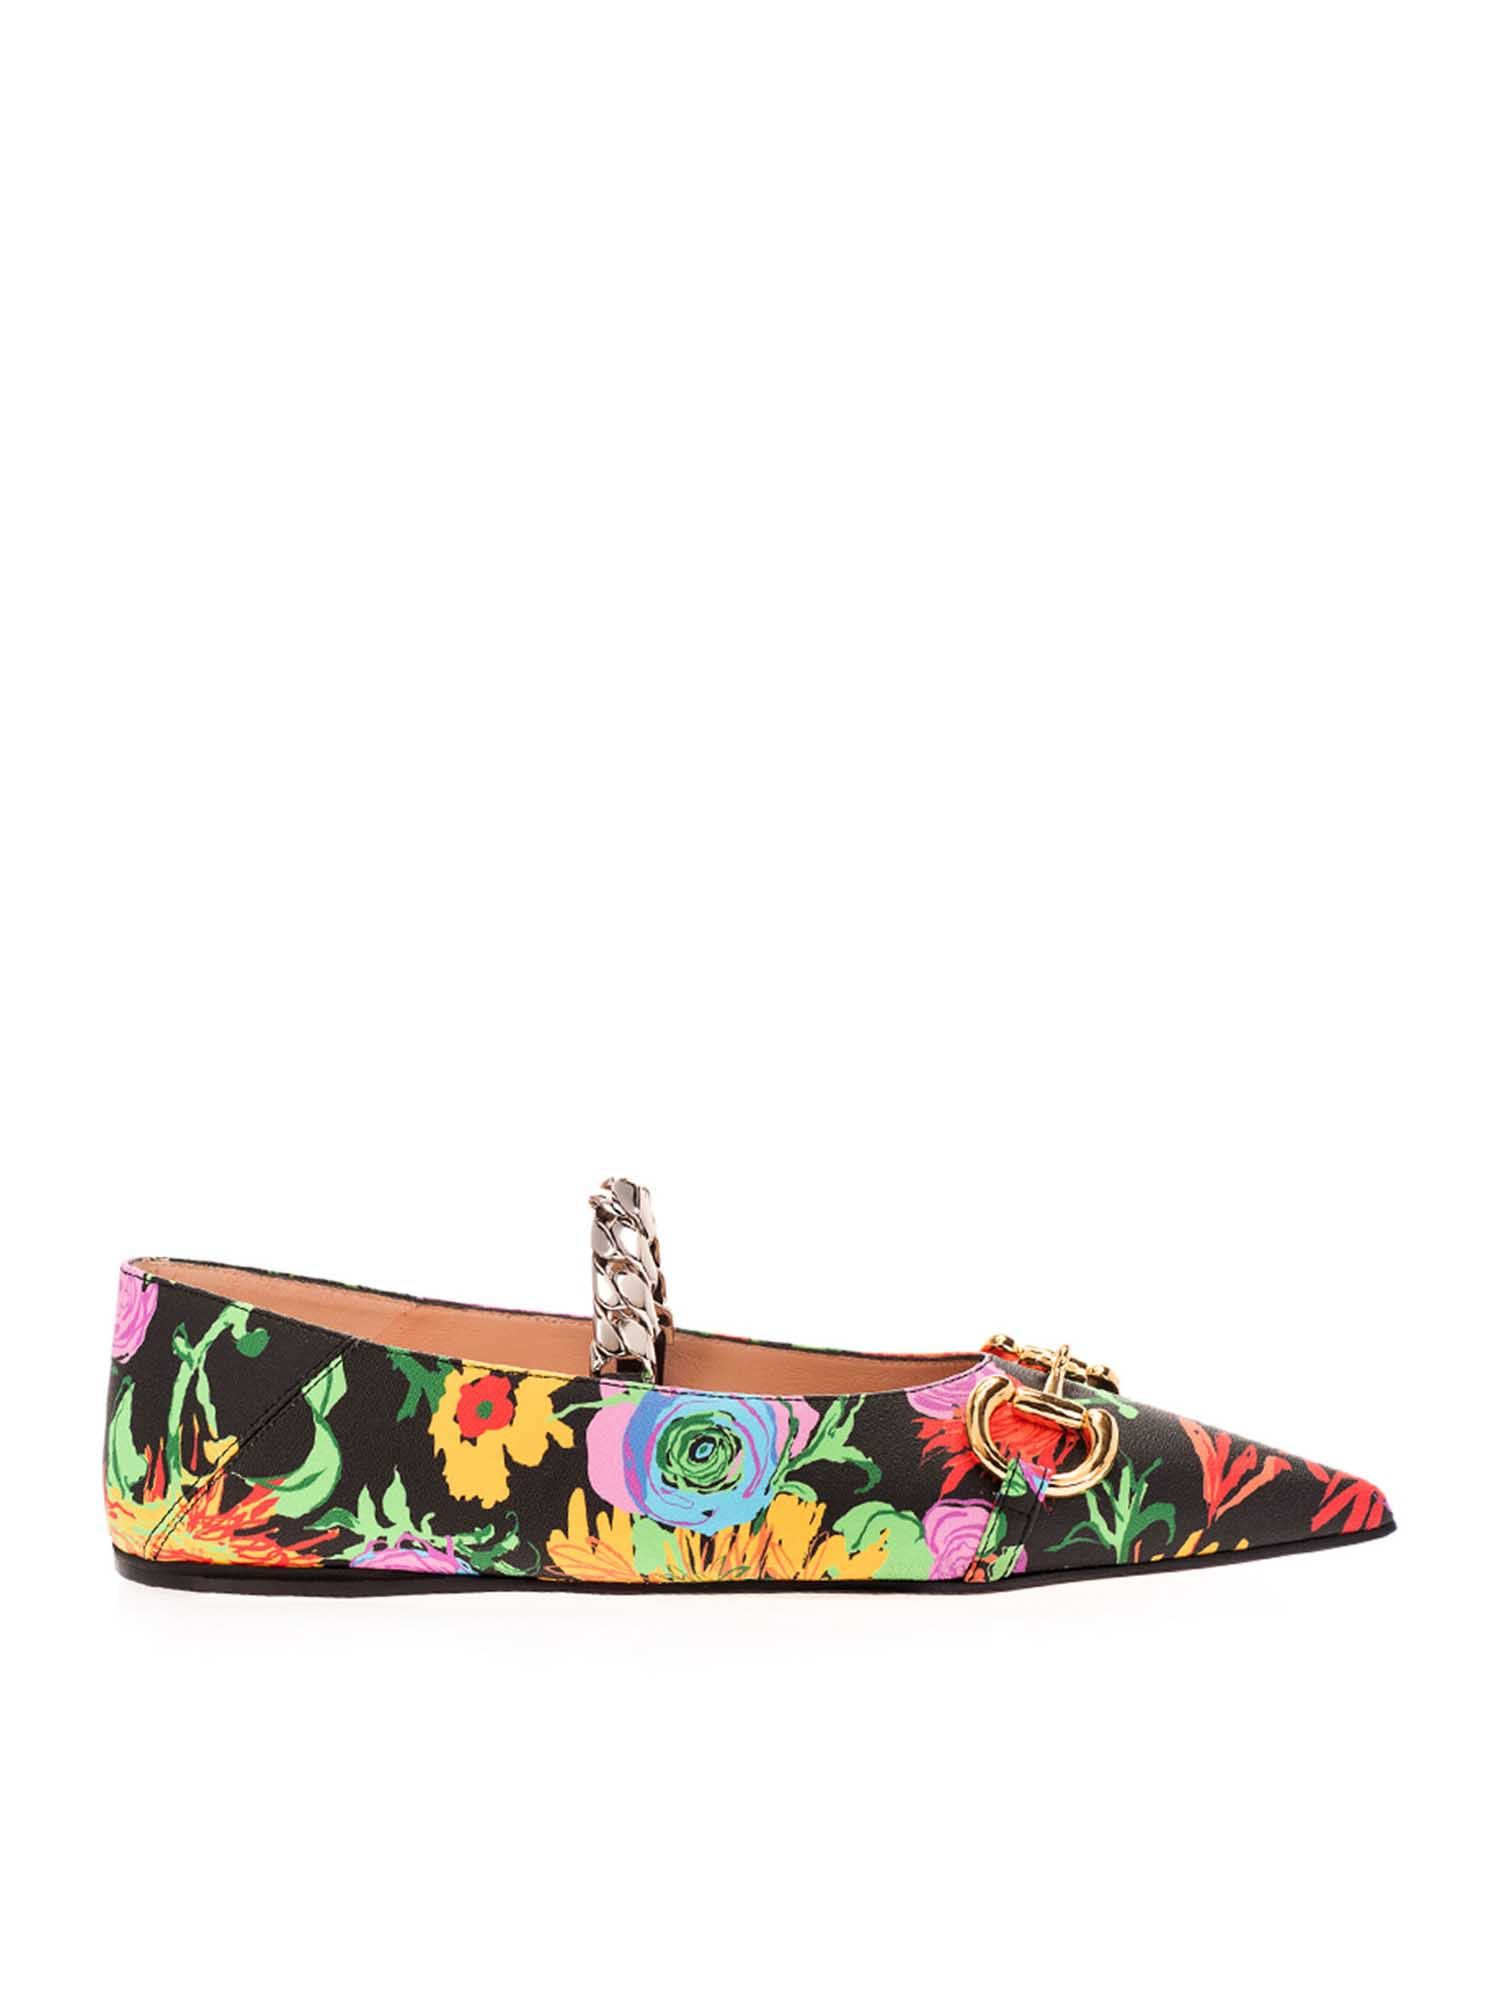 Gucci Leathers FLORAL PRINT CHAIN BALLET FLATS IN BLACK